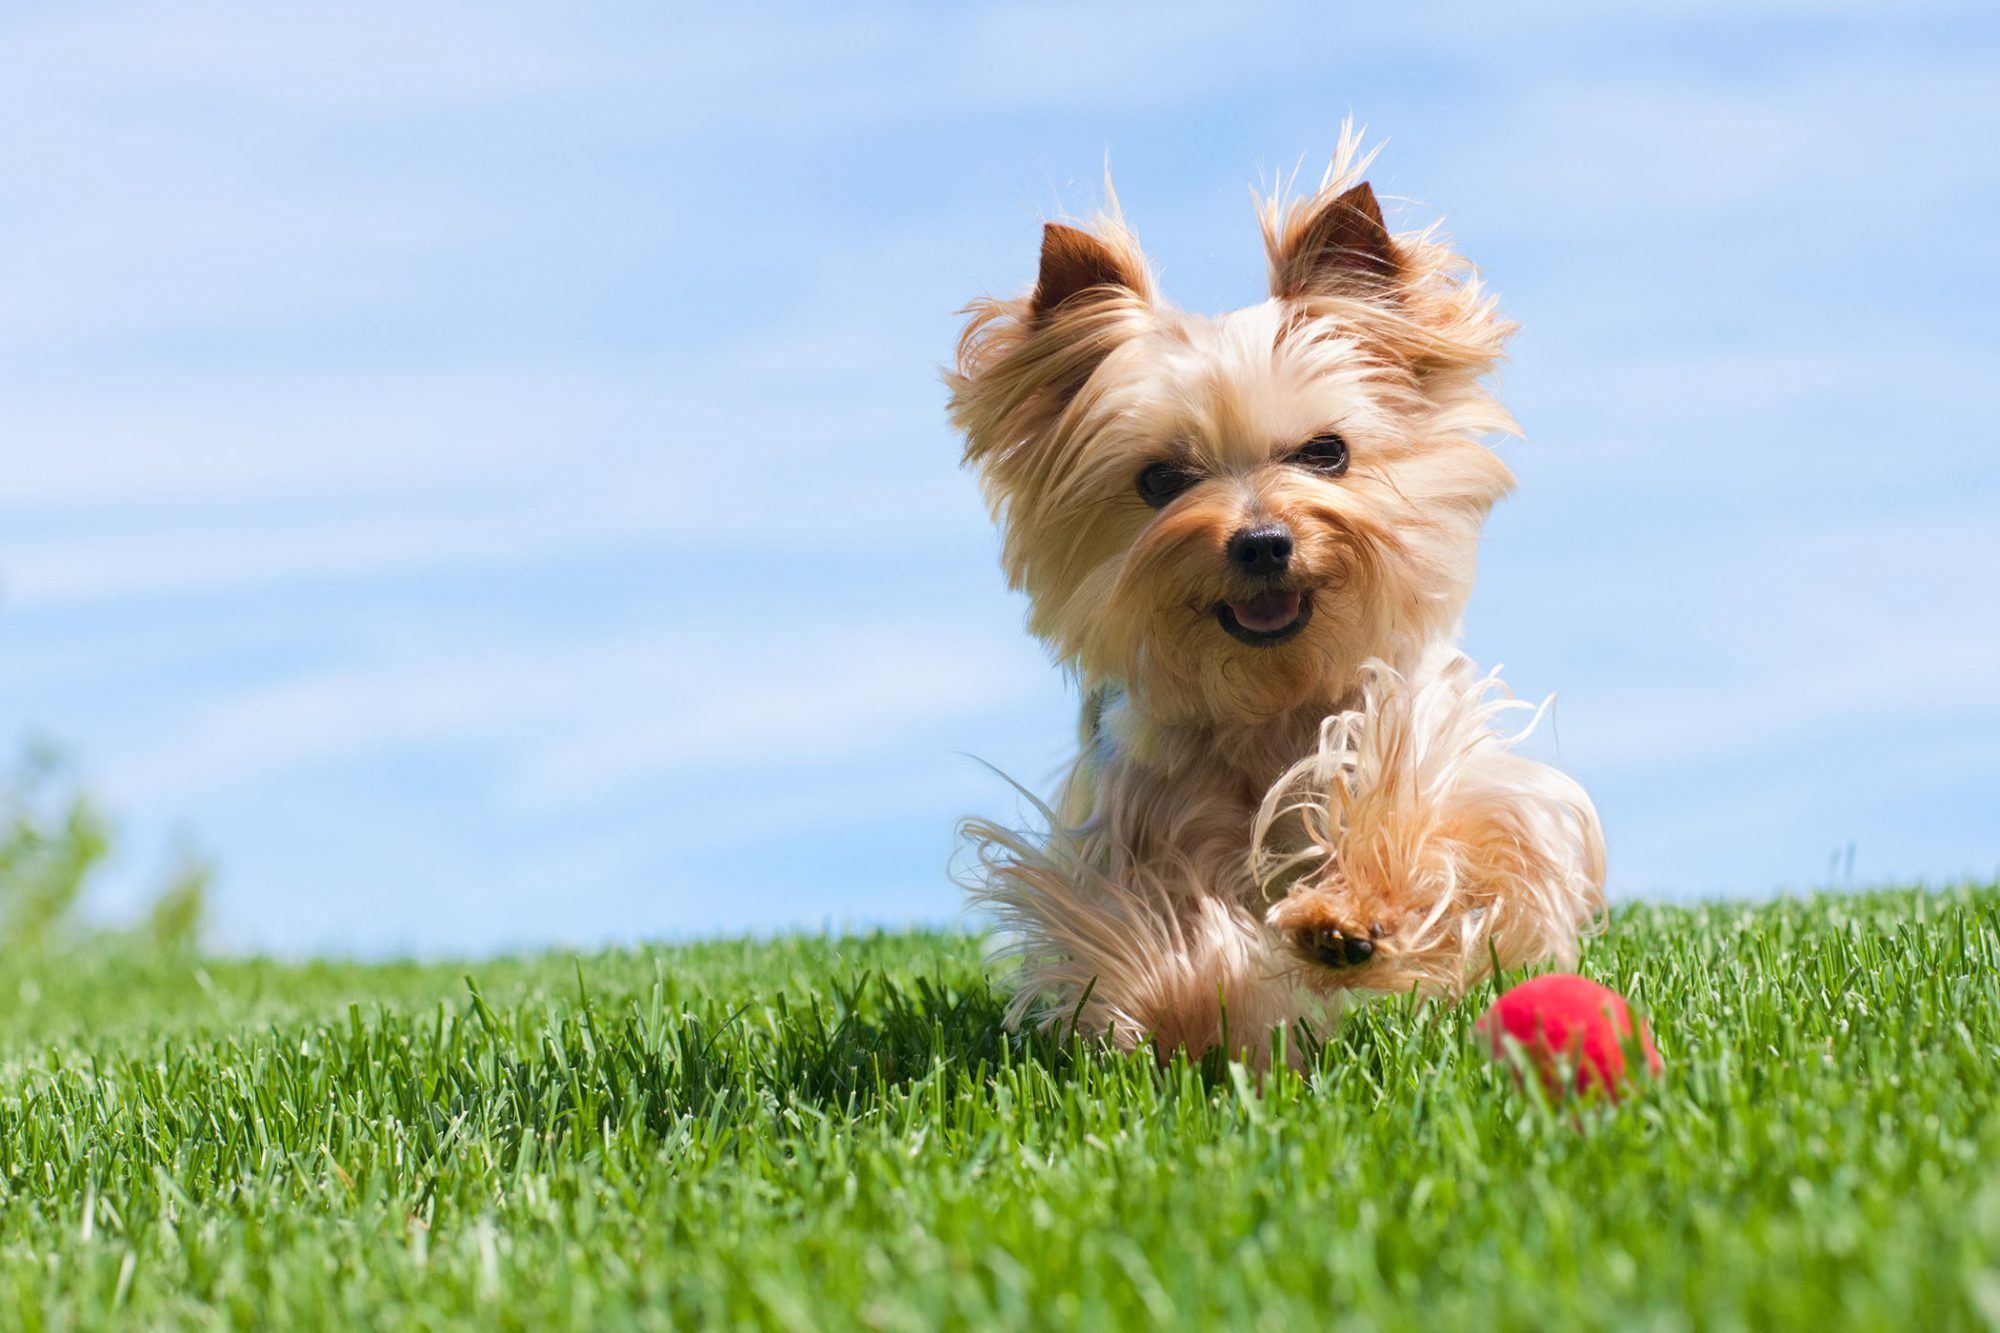 light-color yorkshire terrier or yorkie running in grass